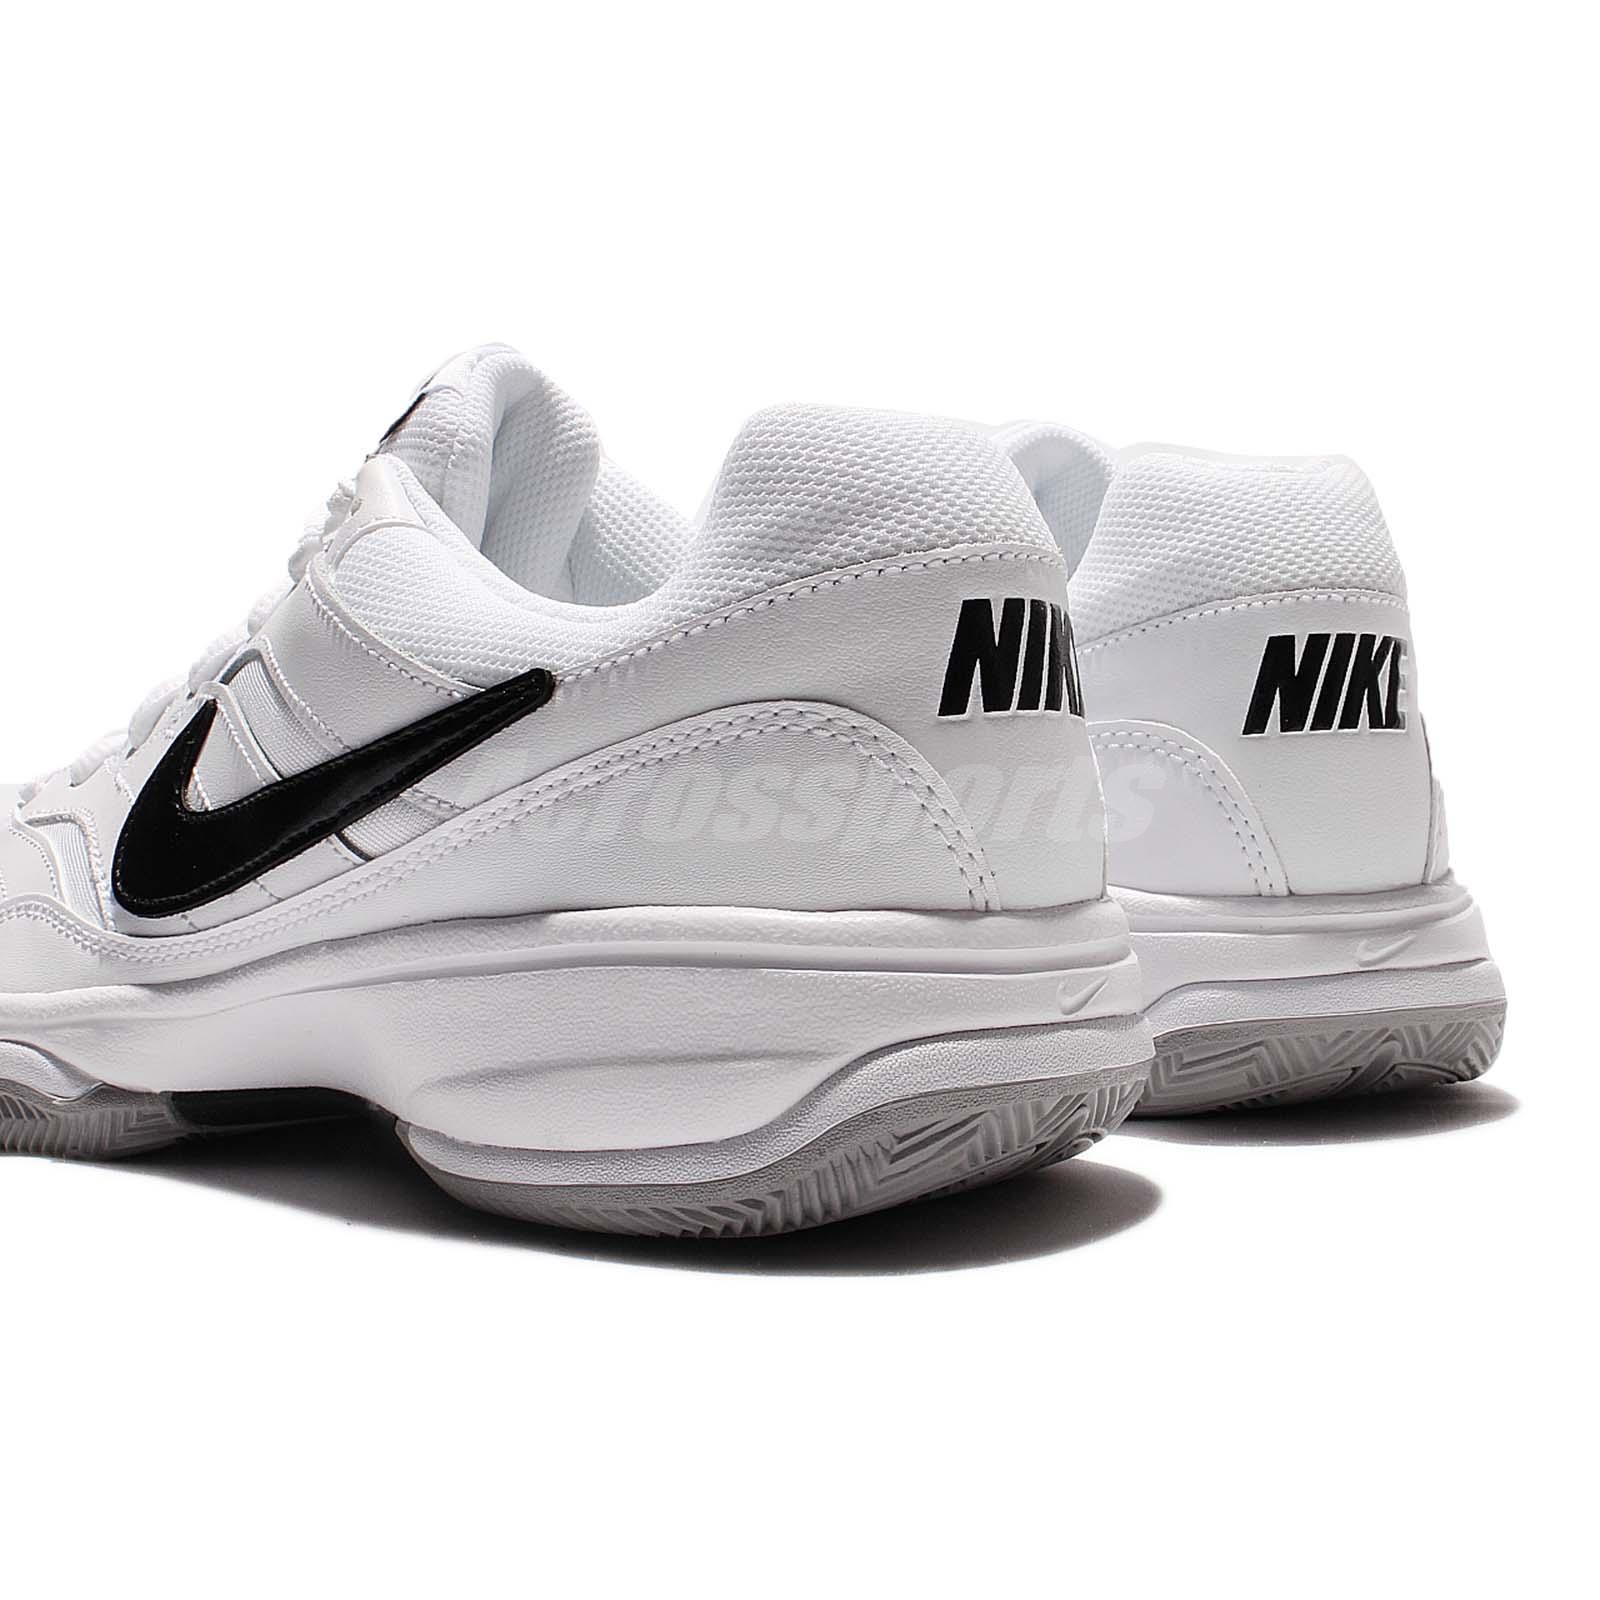 Nike Court Lite White Black Mens Tennis Shoes Sneakers ...